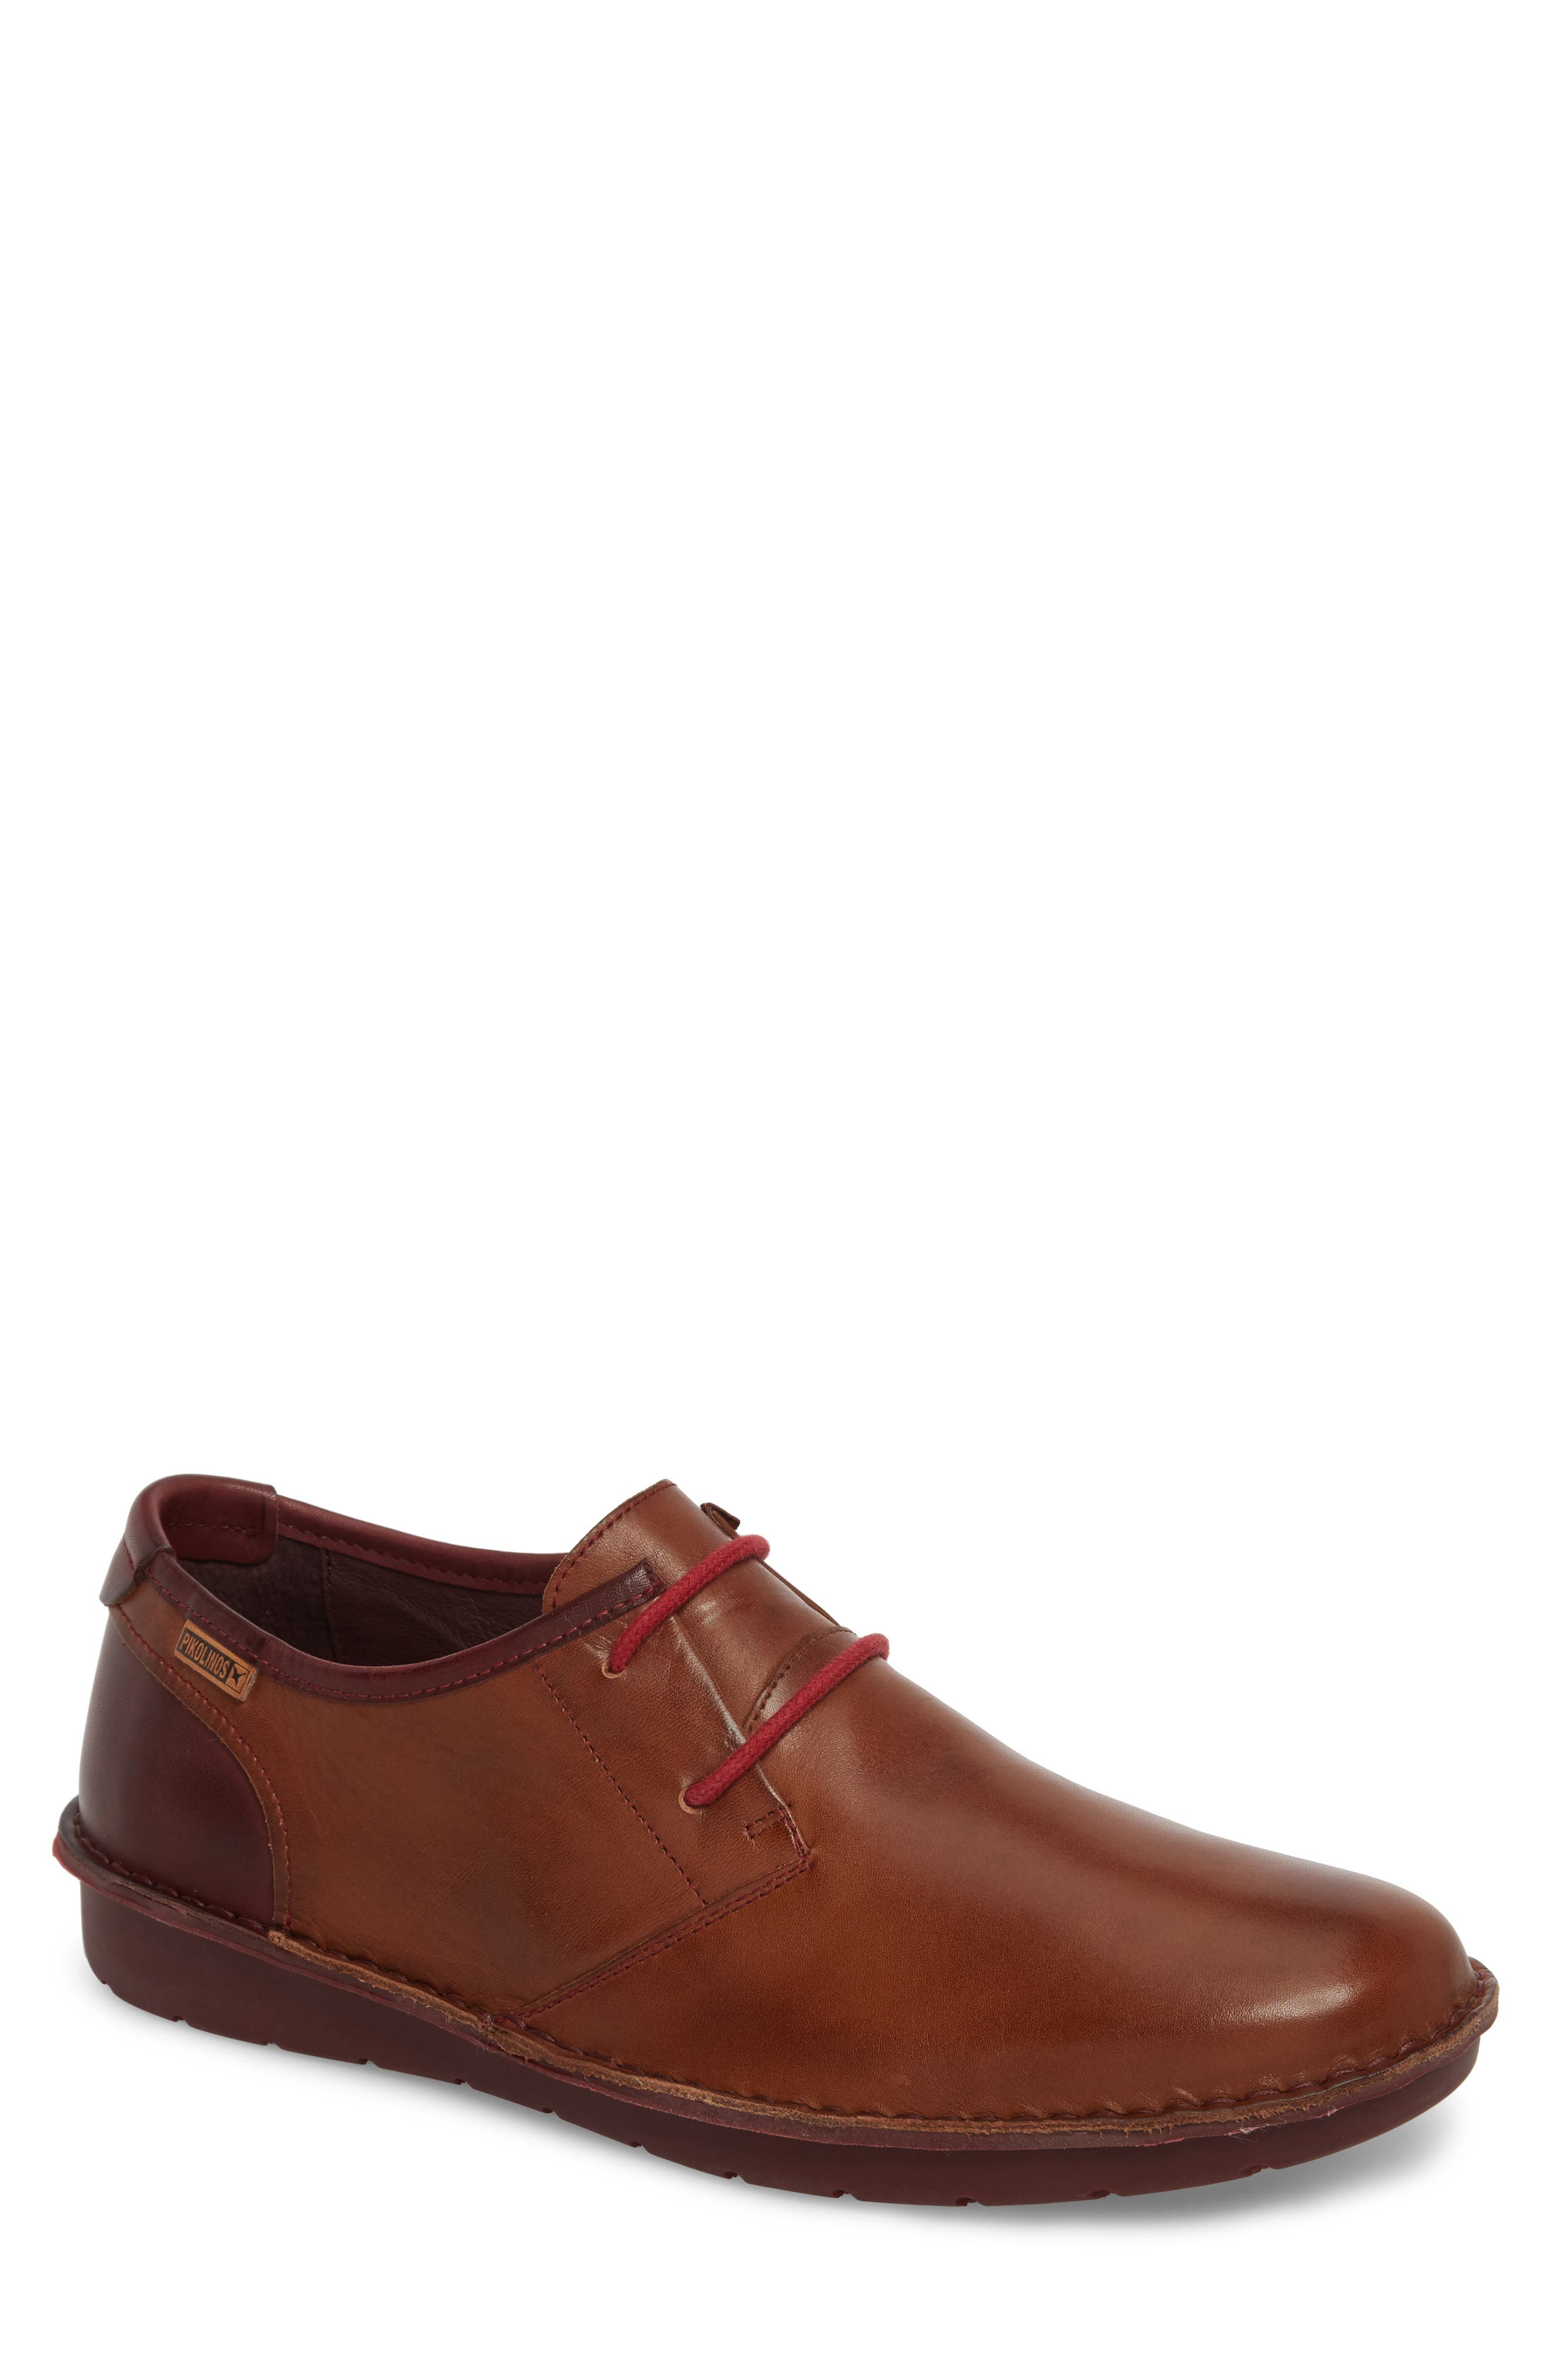 'Santiago' Plain Toe Derby,                         Main,                         color, Cuero Leather